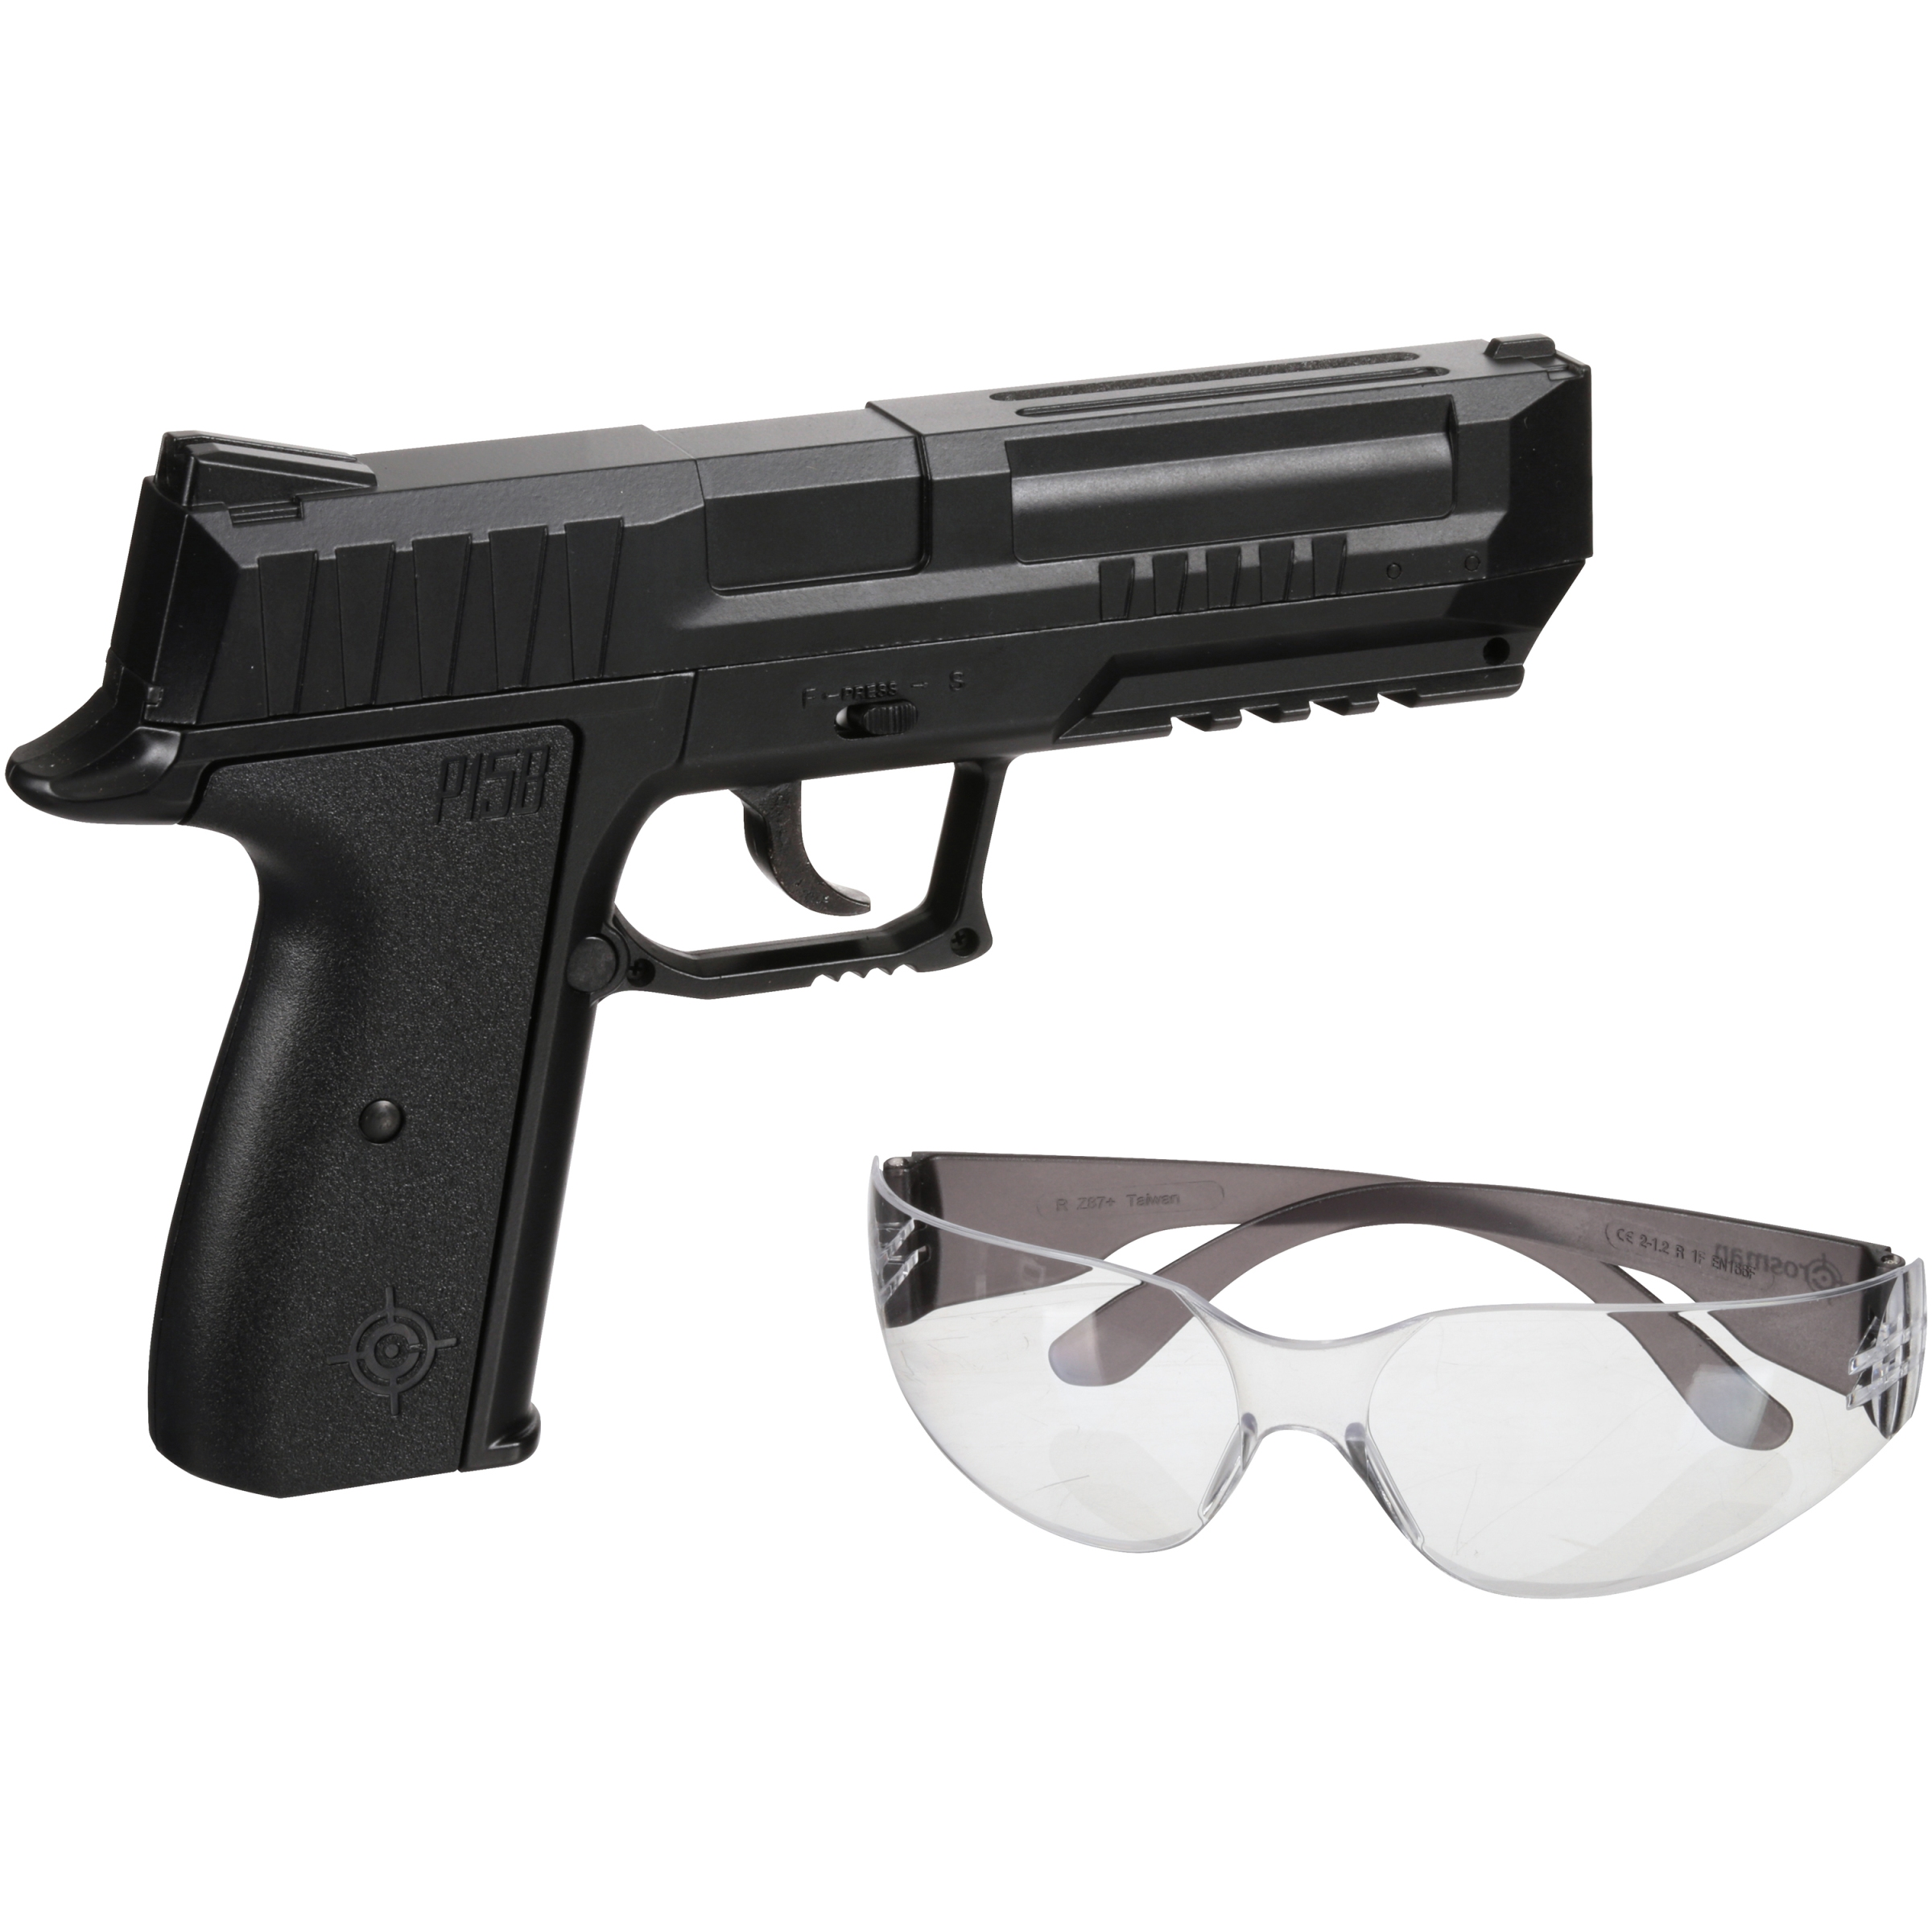 Crosman P15BKT Air Pistol Kit w Gun, 350 BB's, Safety Glass by Crosman Corporation